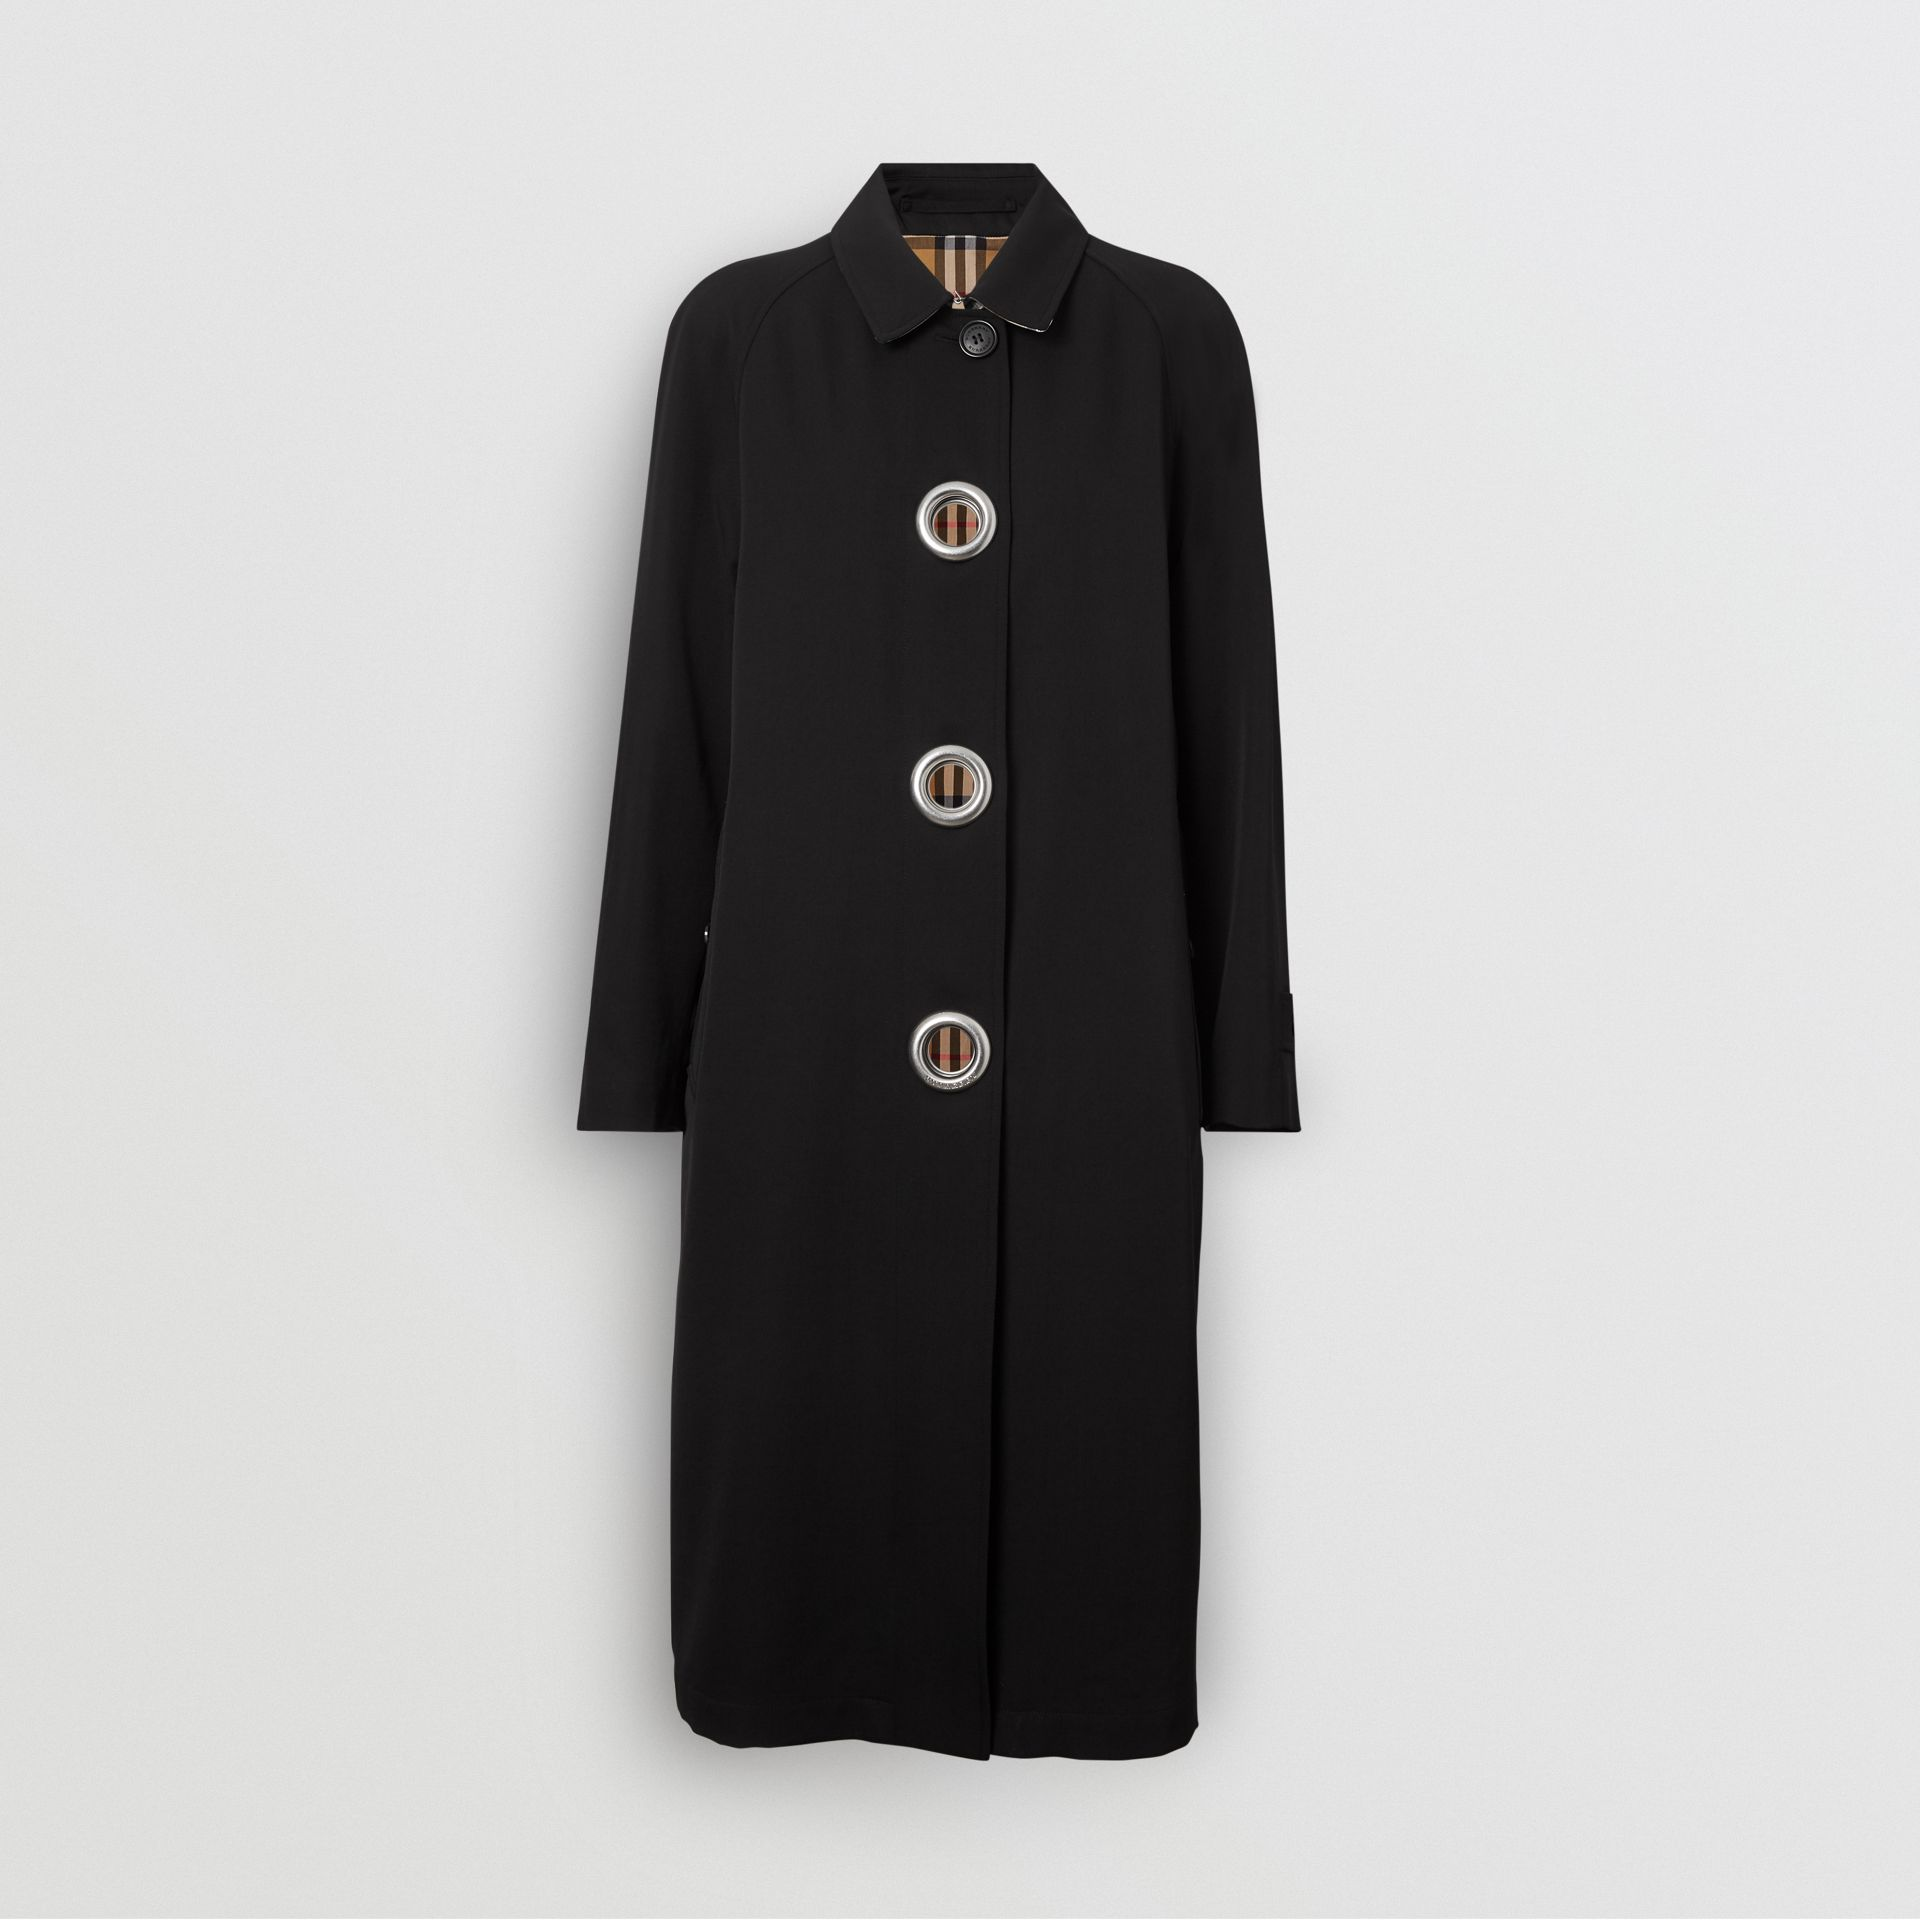 Grommet Detail Wool Gabardine Car Coat in Black - Women | Burberry United Kingdom - gallery image 3